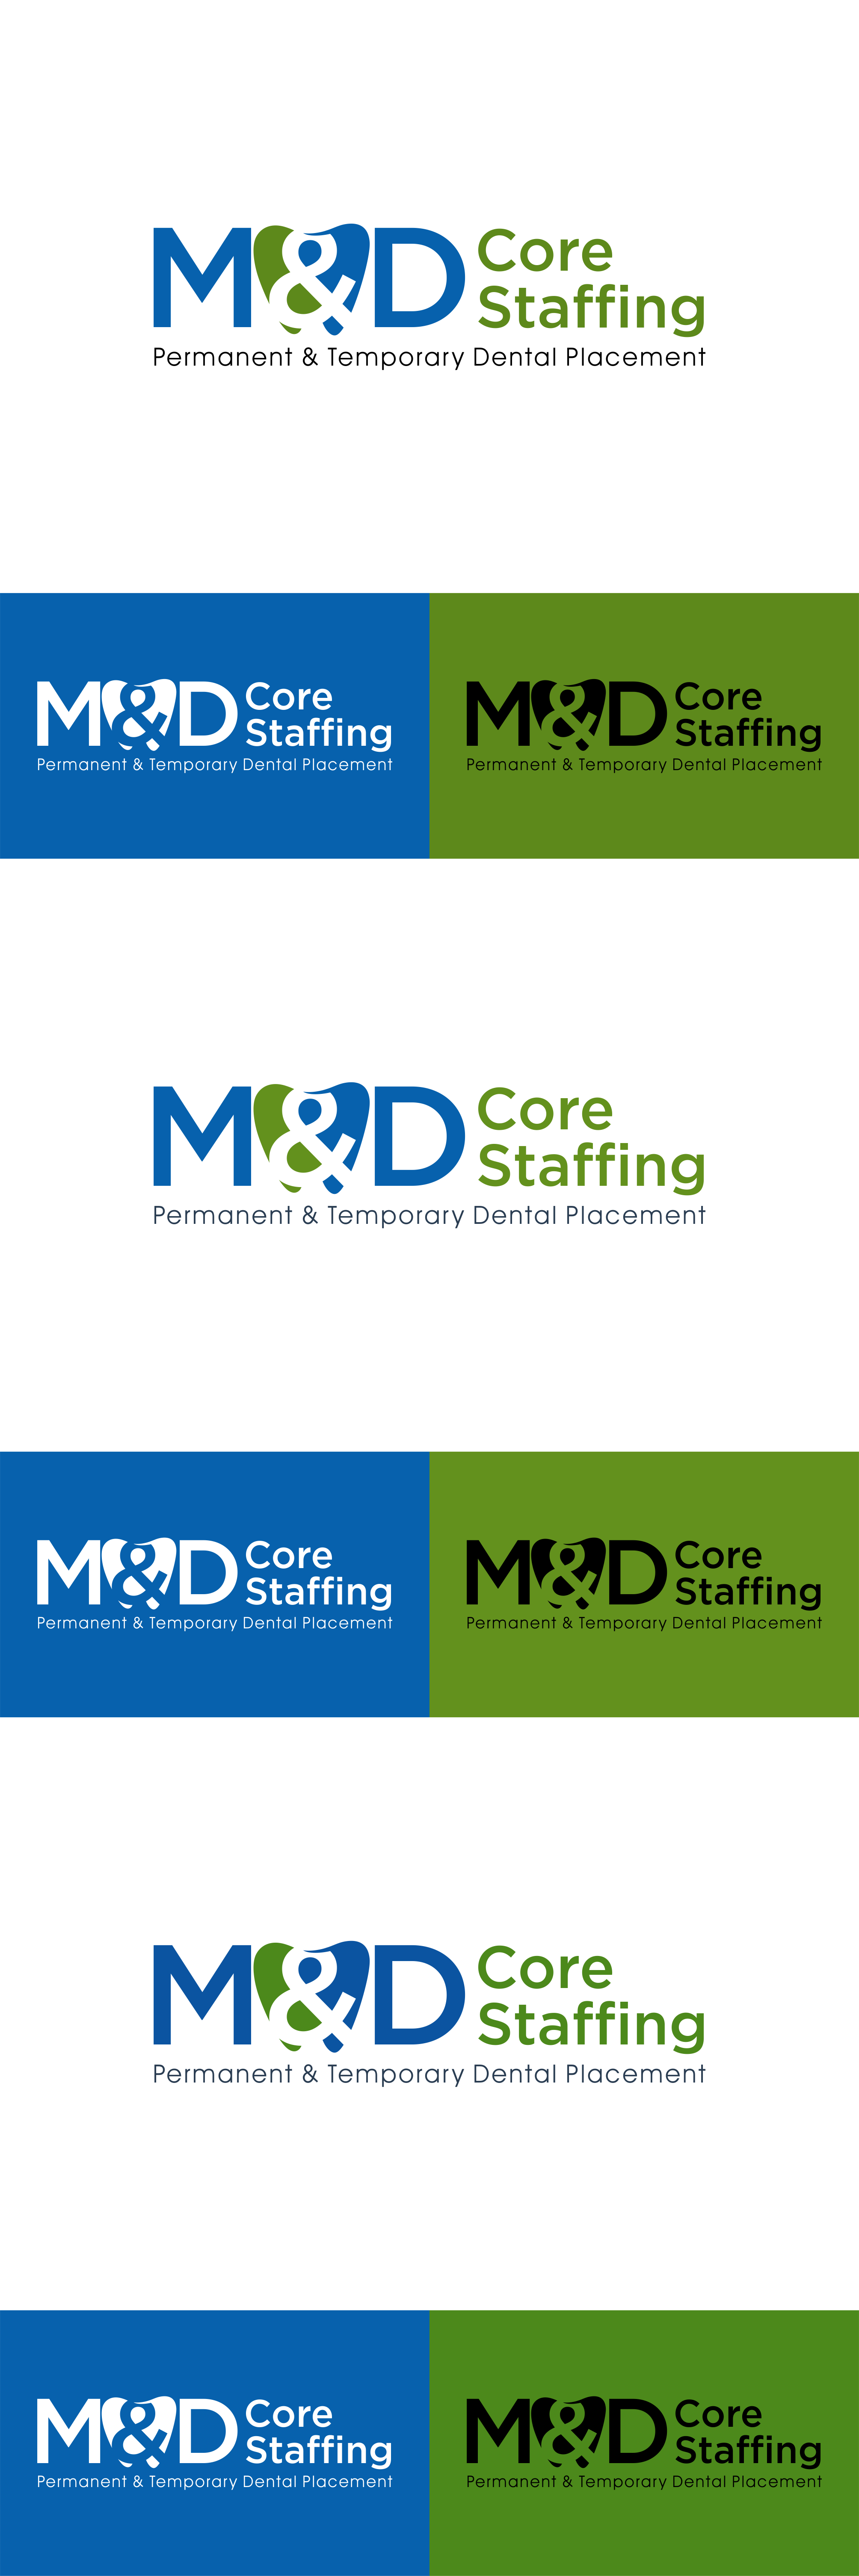 M&D Core Staffing